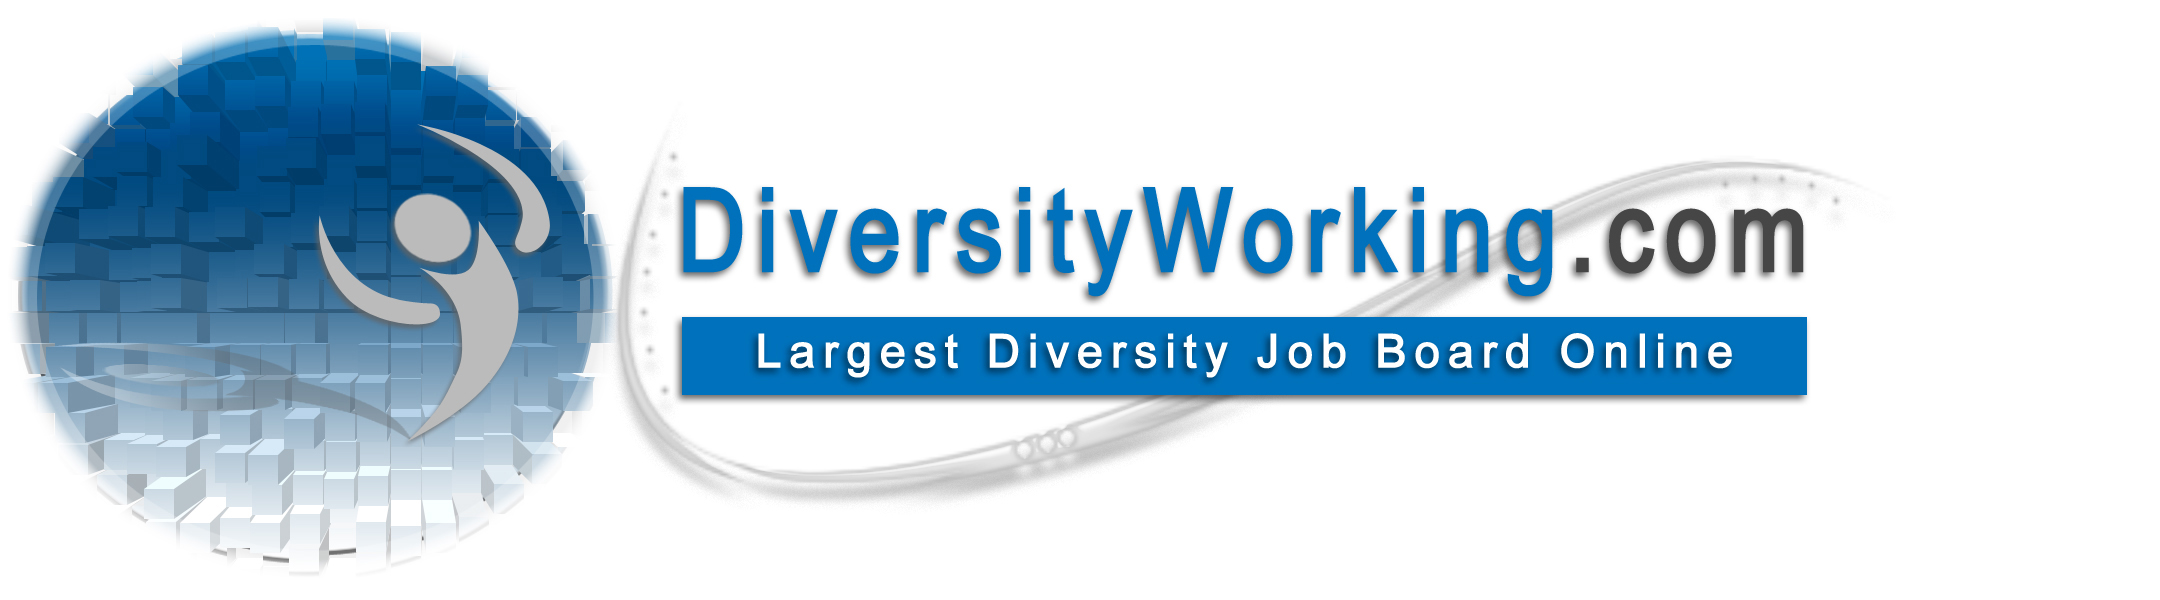 Lincoln Financial Announces Diversity Job Opportunity For